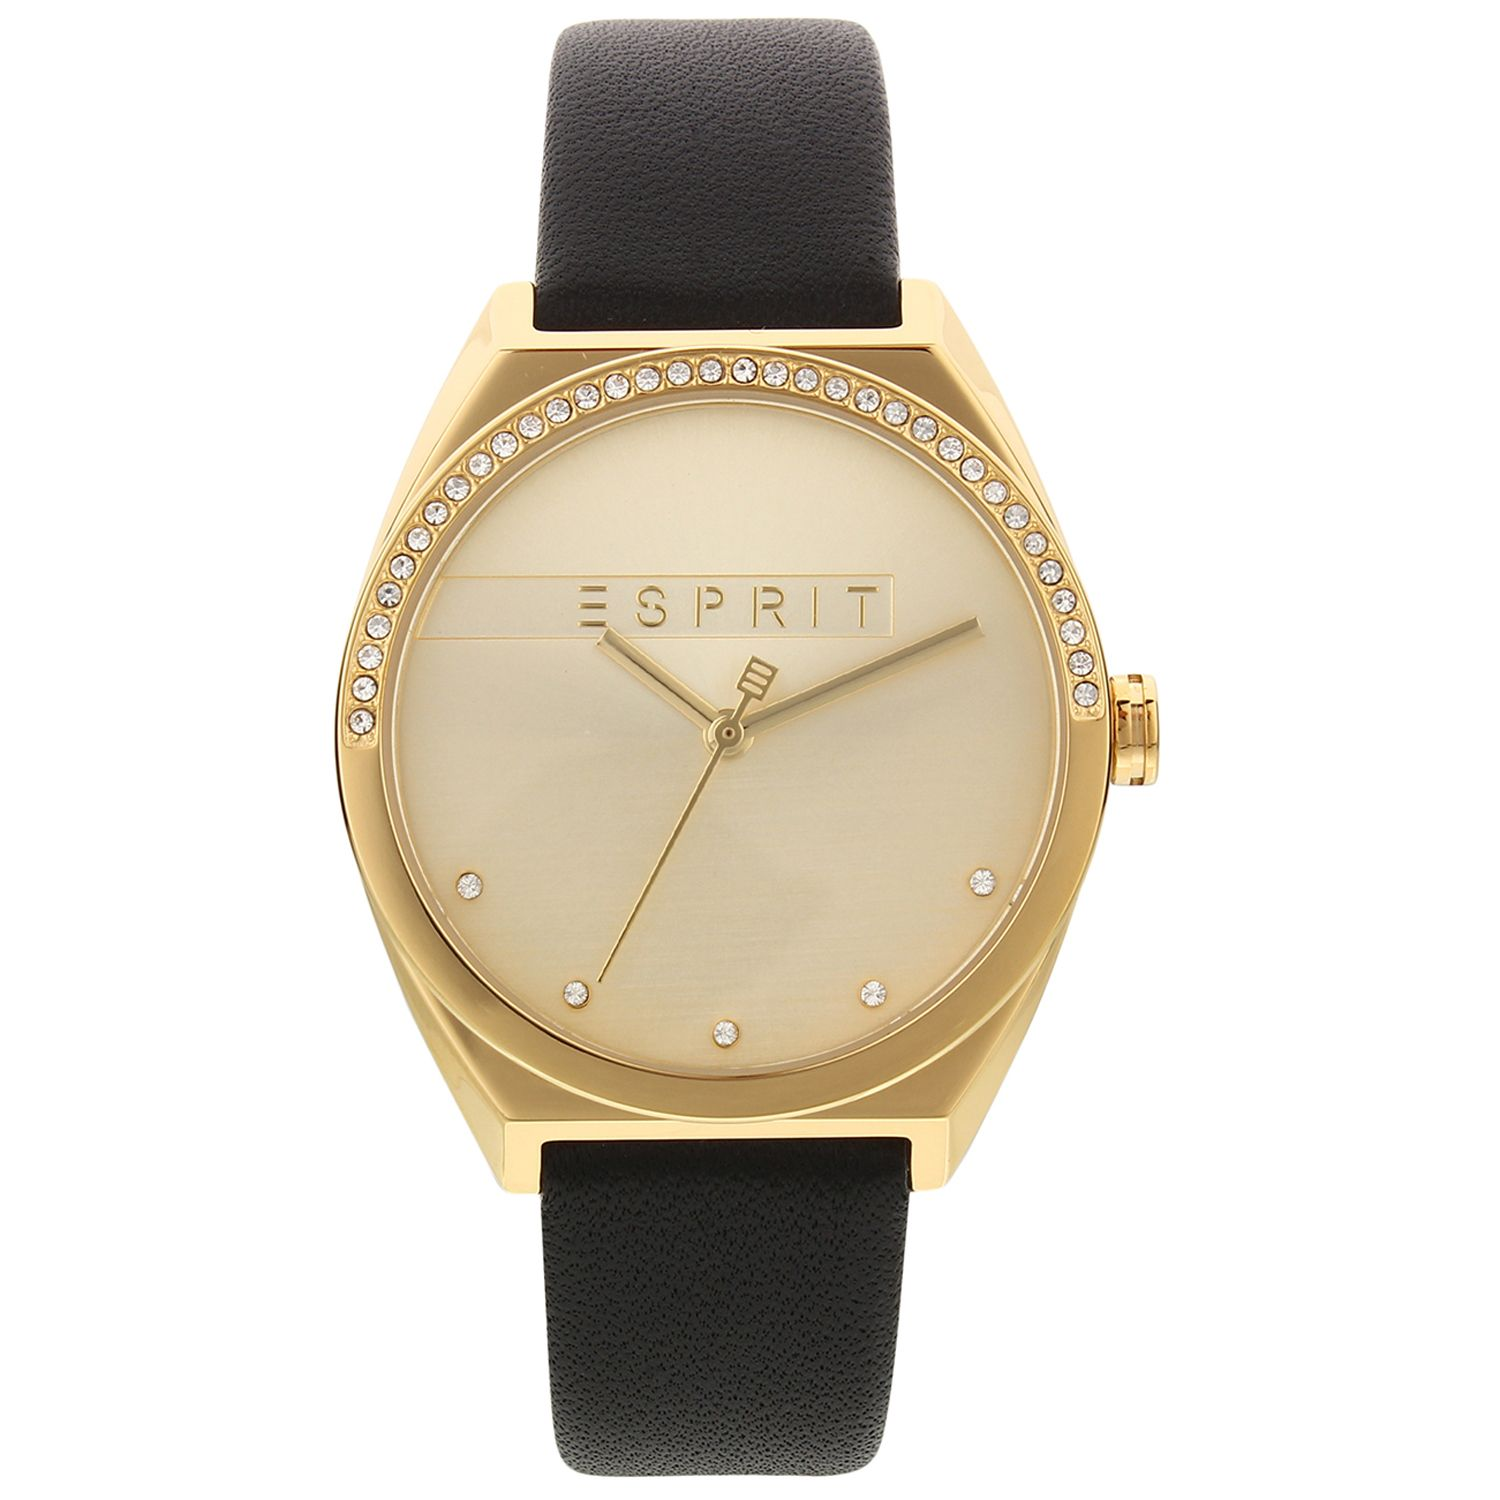 Esprit Watch ES1L057L0025 Women Gold